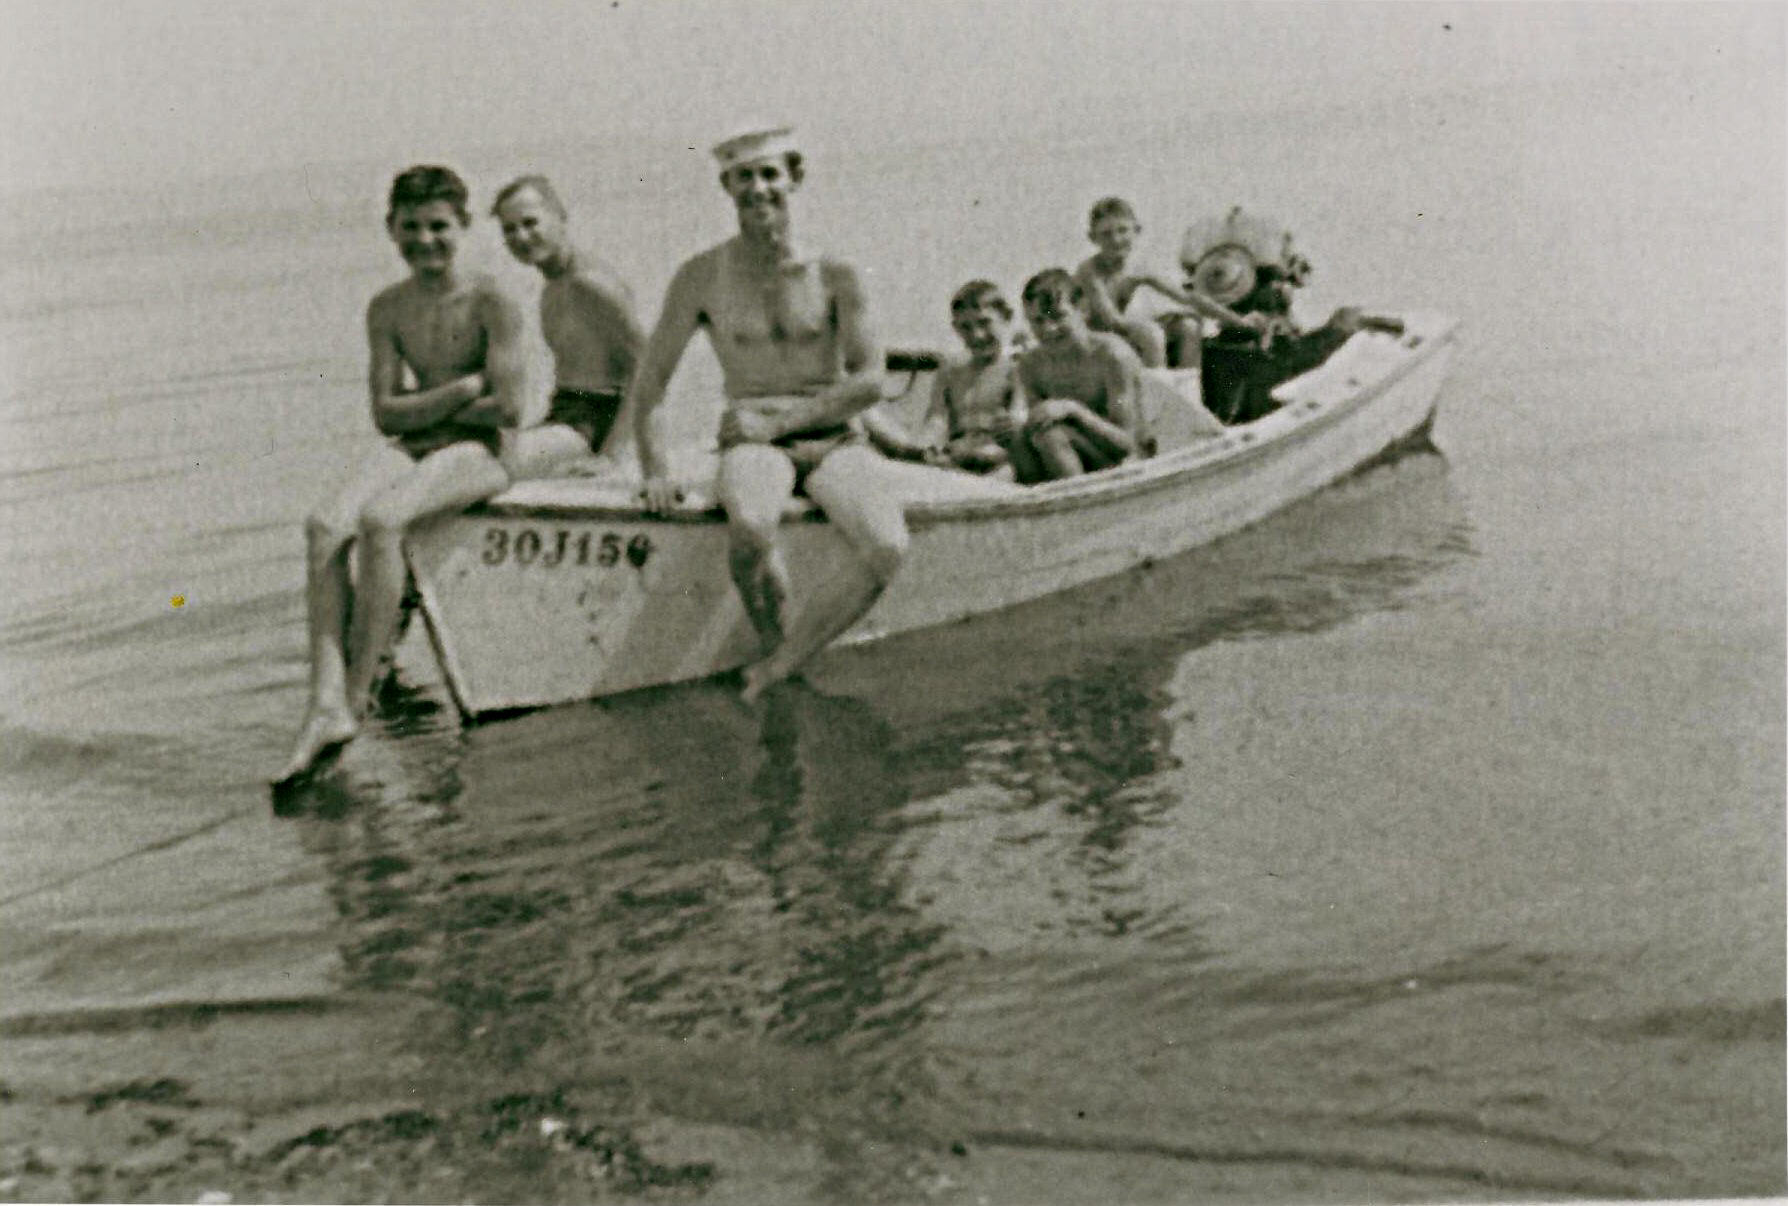 boatload of Holmes, loaded into a small boat along the Blake Island